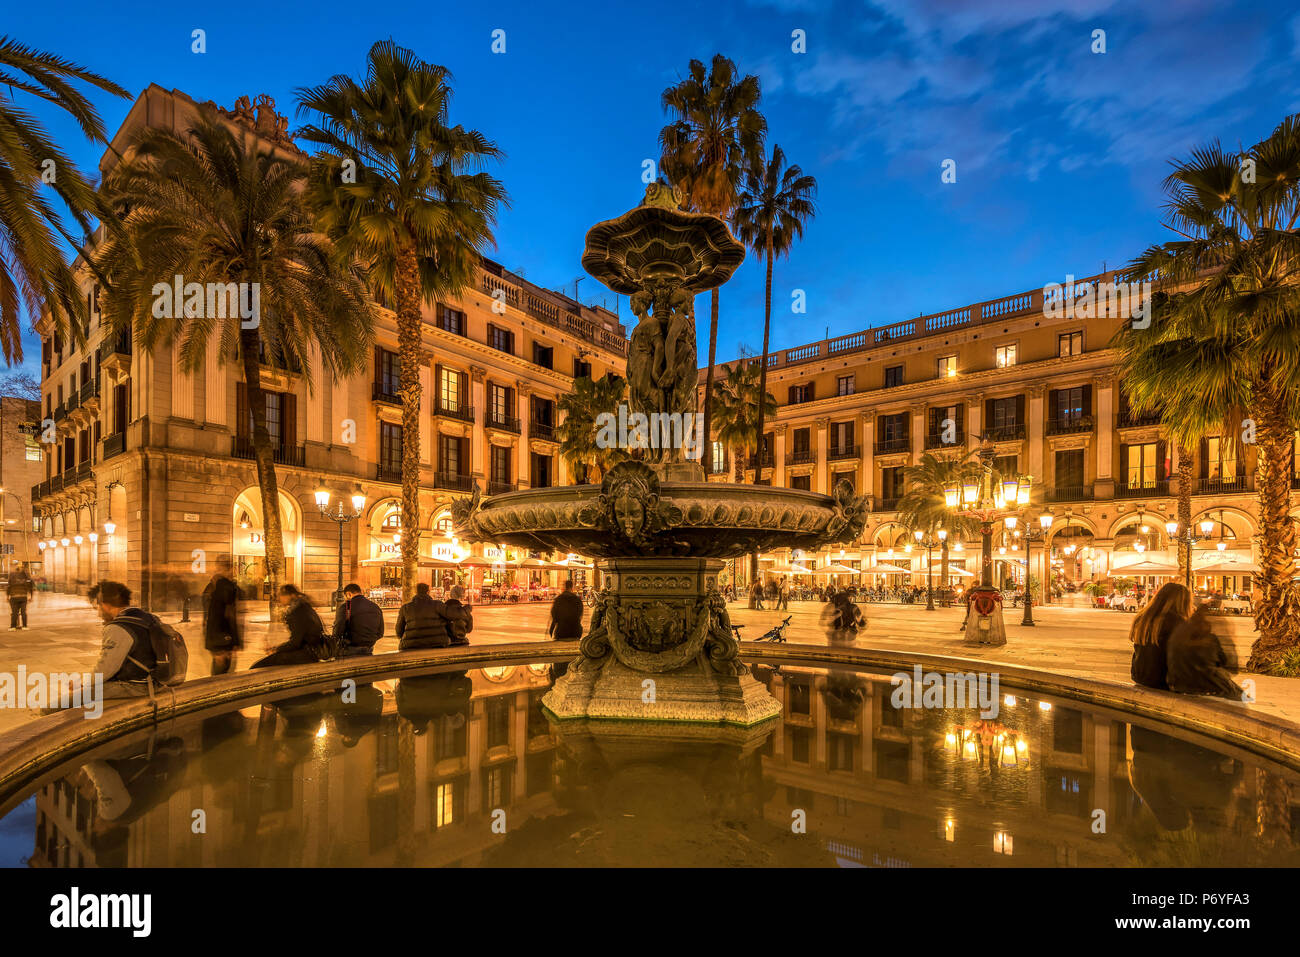 Night view of Placa Reial square (Plaza Real) in the Gothic Quarter, Barcelona, Catalonia, Spain Stock Photo